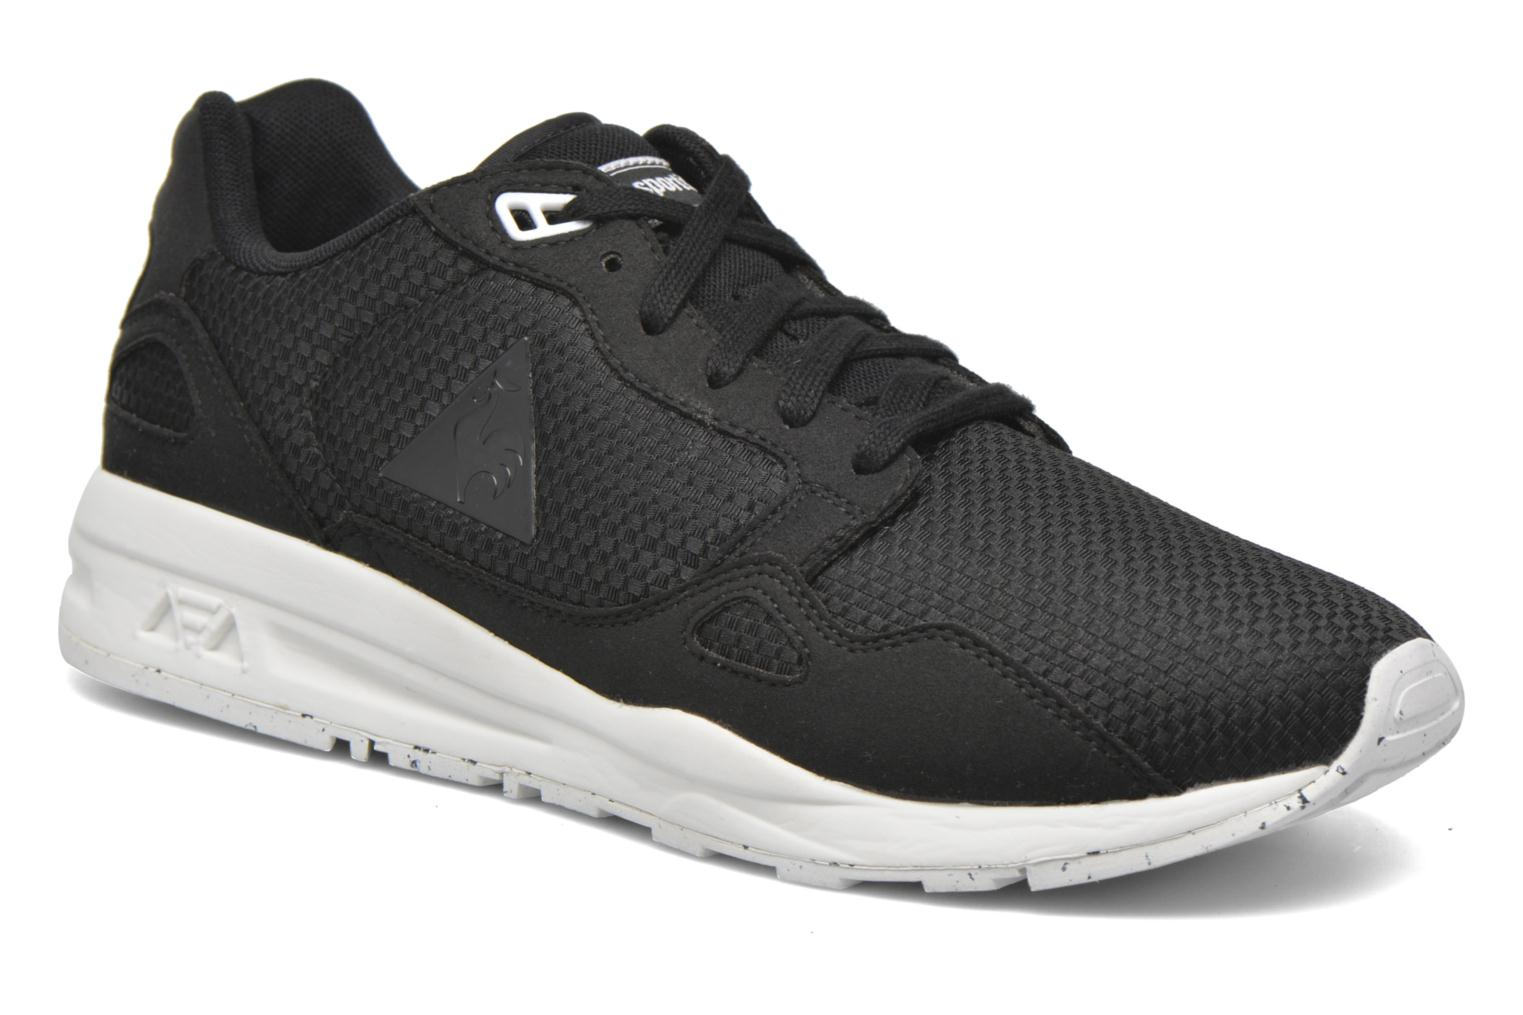 Lcs R900 Woven Jacquard Black/Optical White